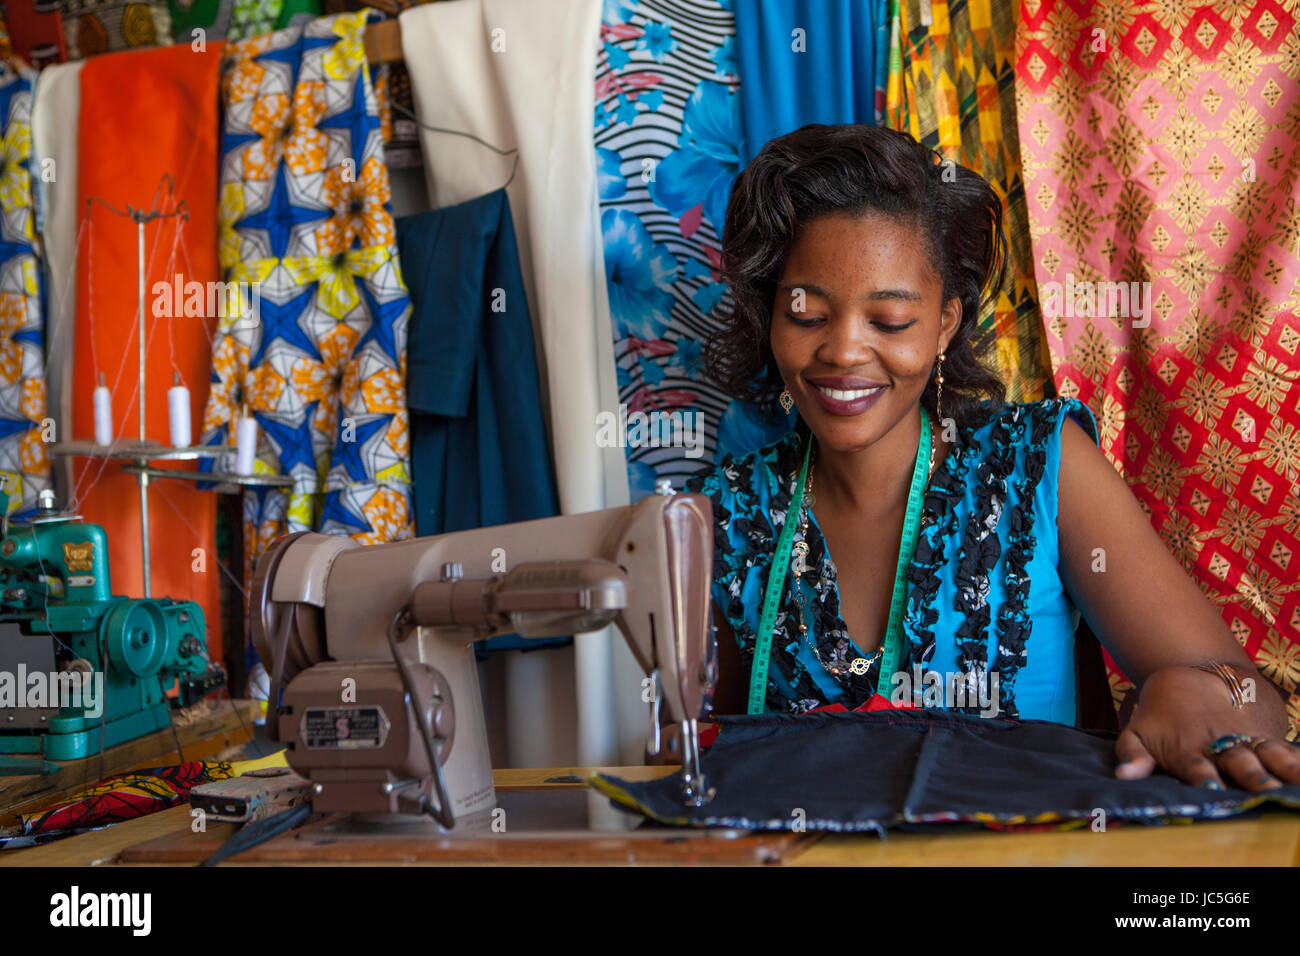 Female tailor, Tanzania, Africa - Stock Image